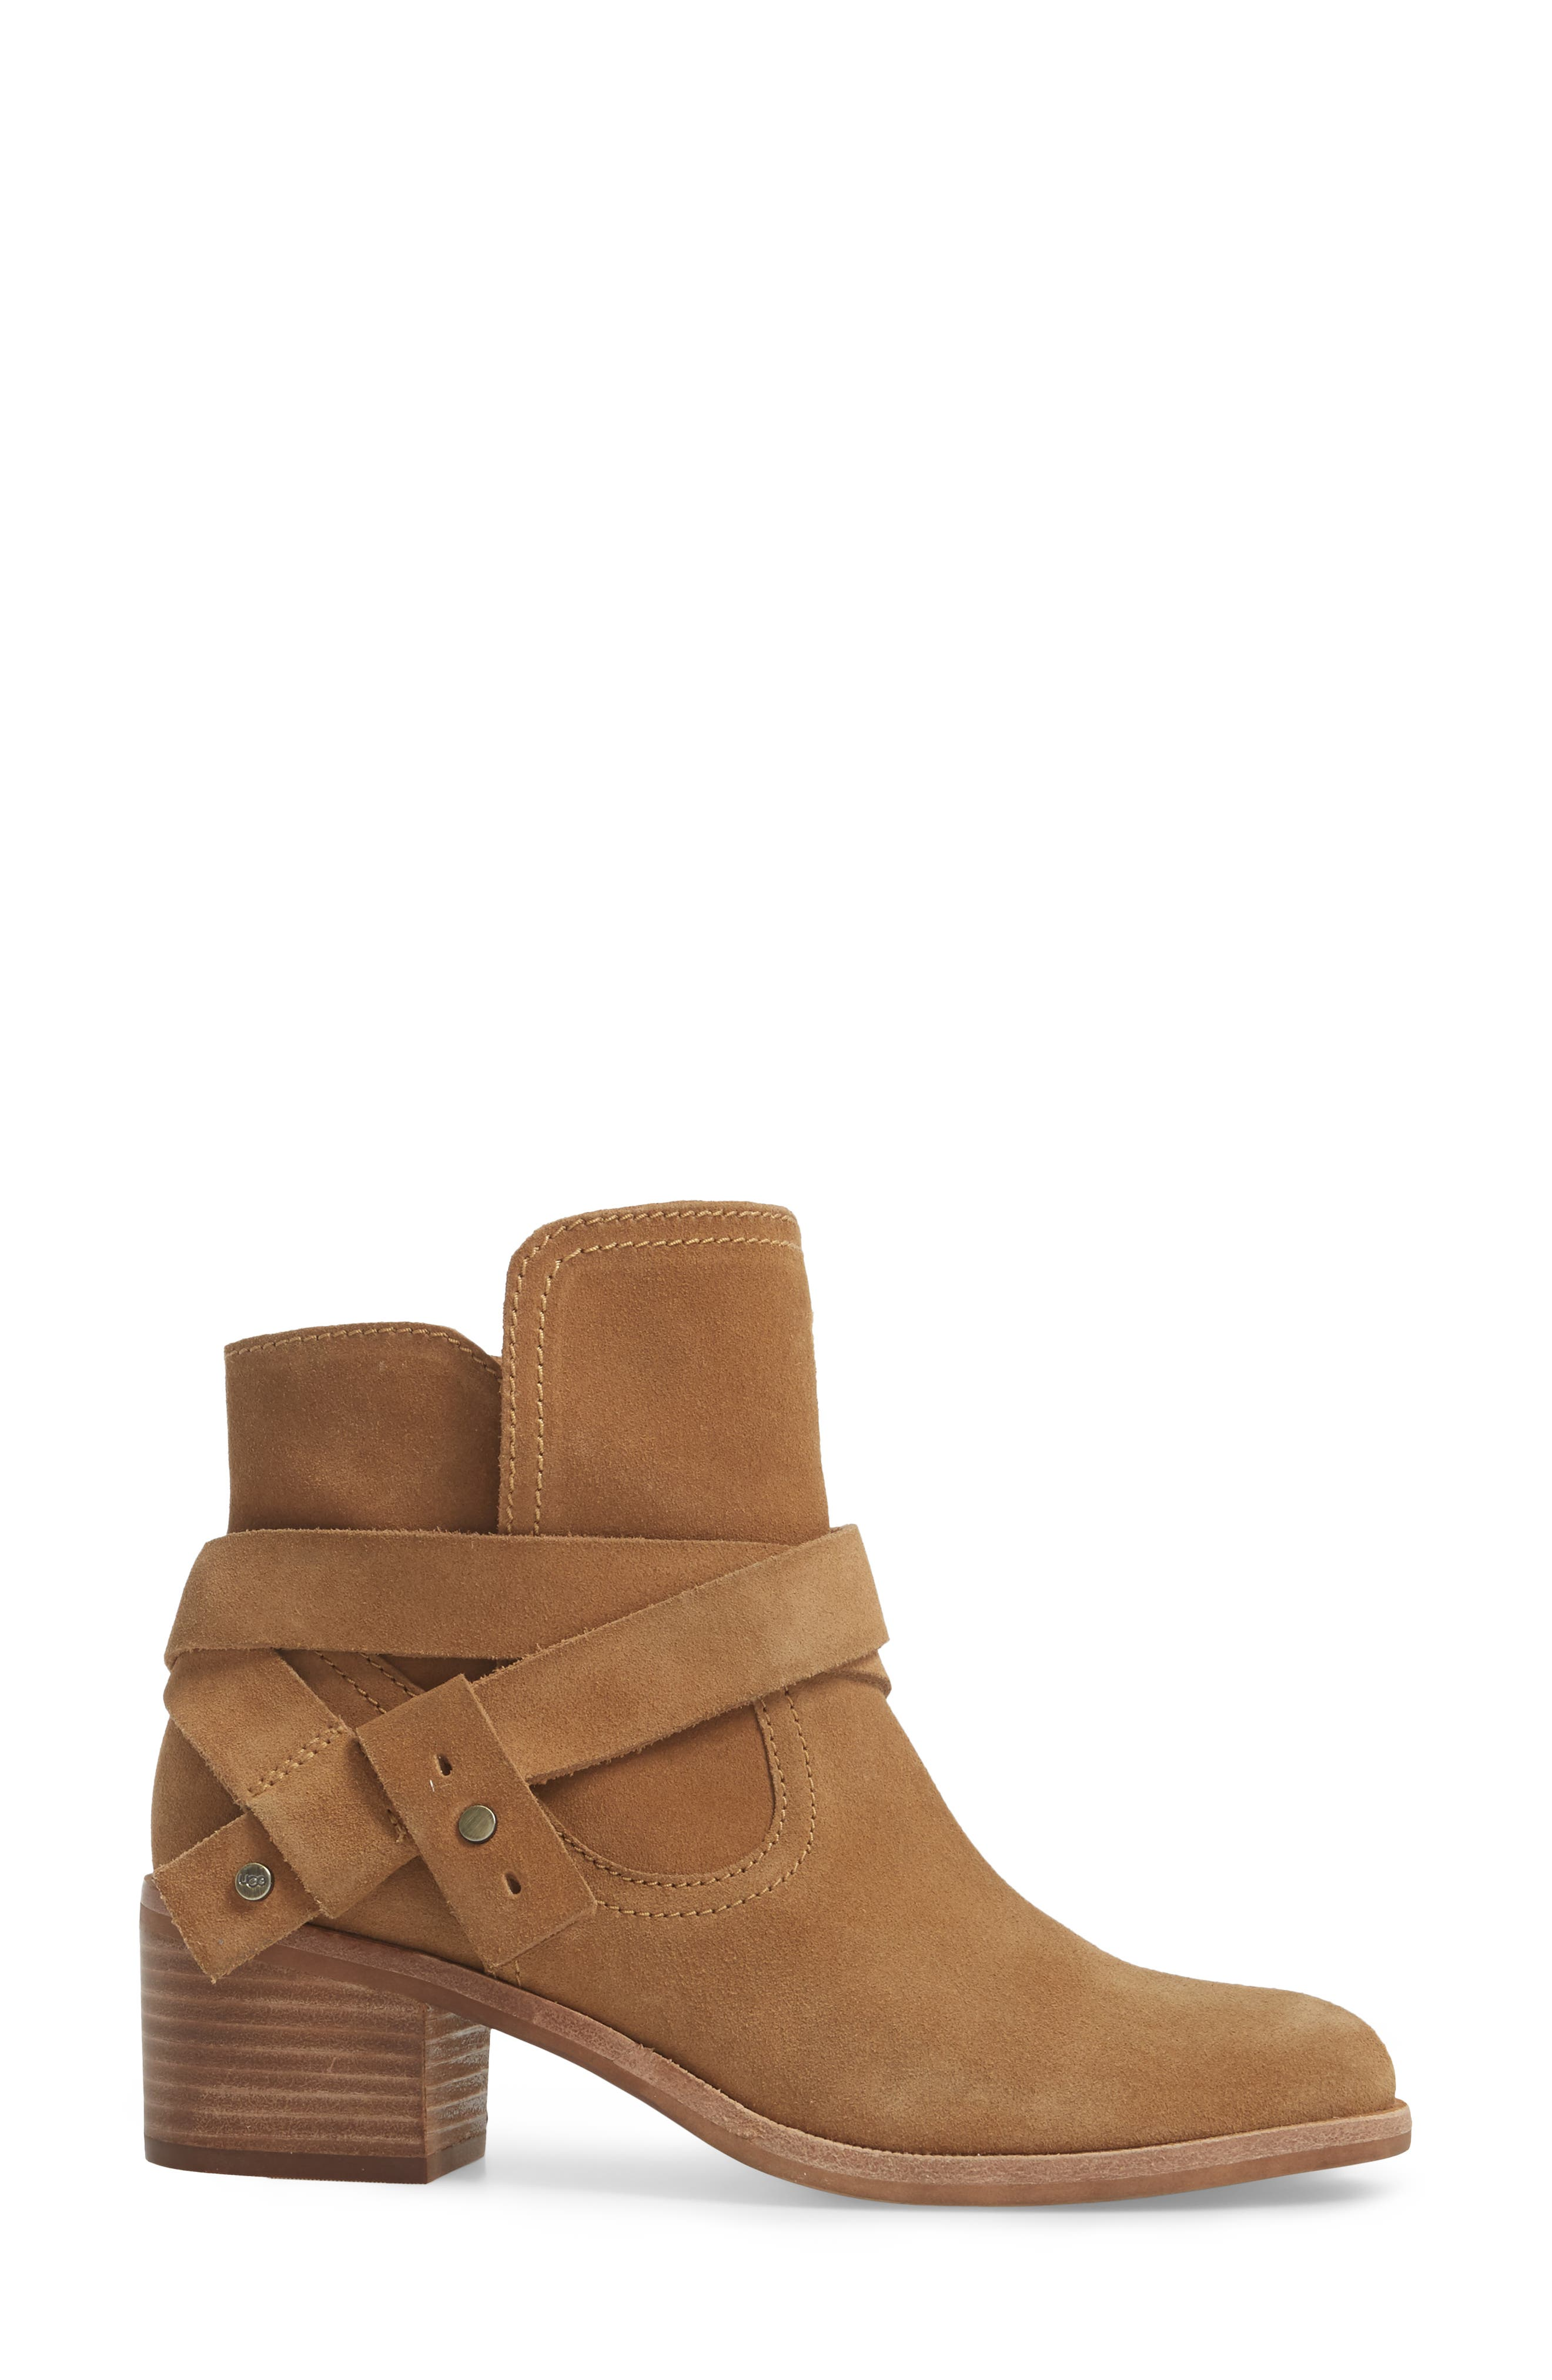 Elora Bootie,                             Alternate thumbnail 3, color,                             Chestnut Suede